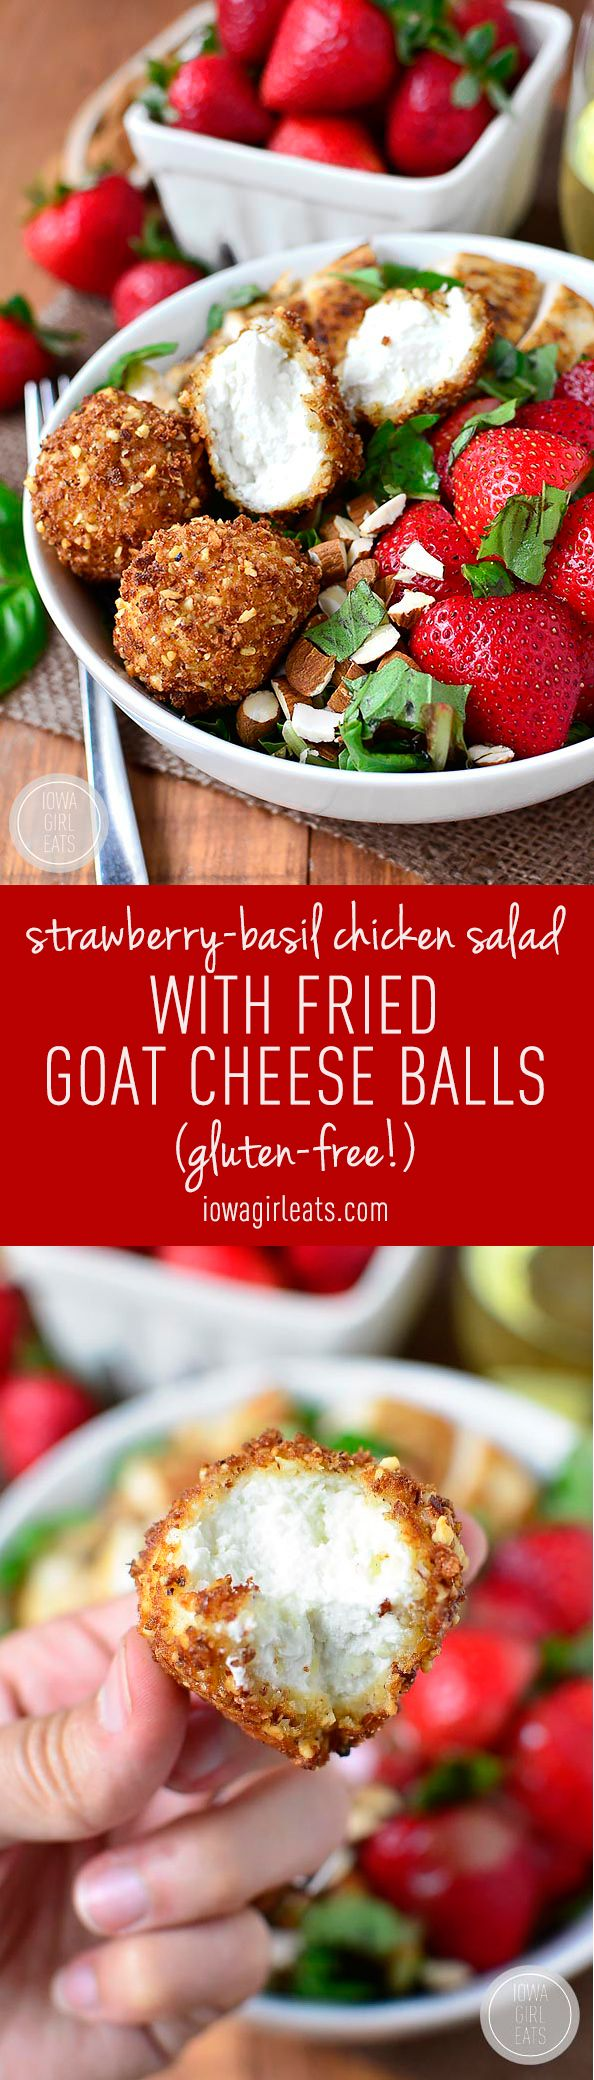 Strawberry-Basil Chicken Salad with Fried Goat Cheese Balls is a fresh and flavor-packed dish - crunchy, creamy, sweet, and savory! #glutenfree